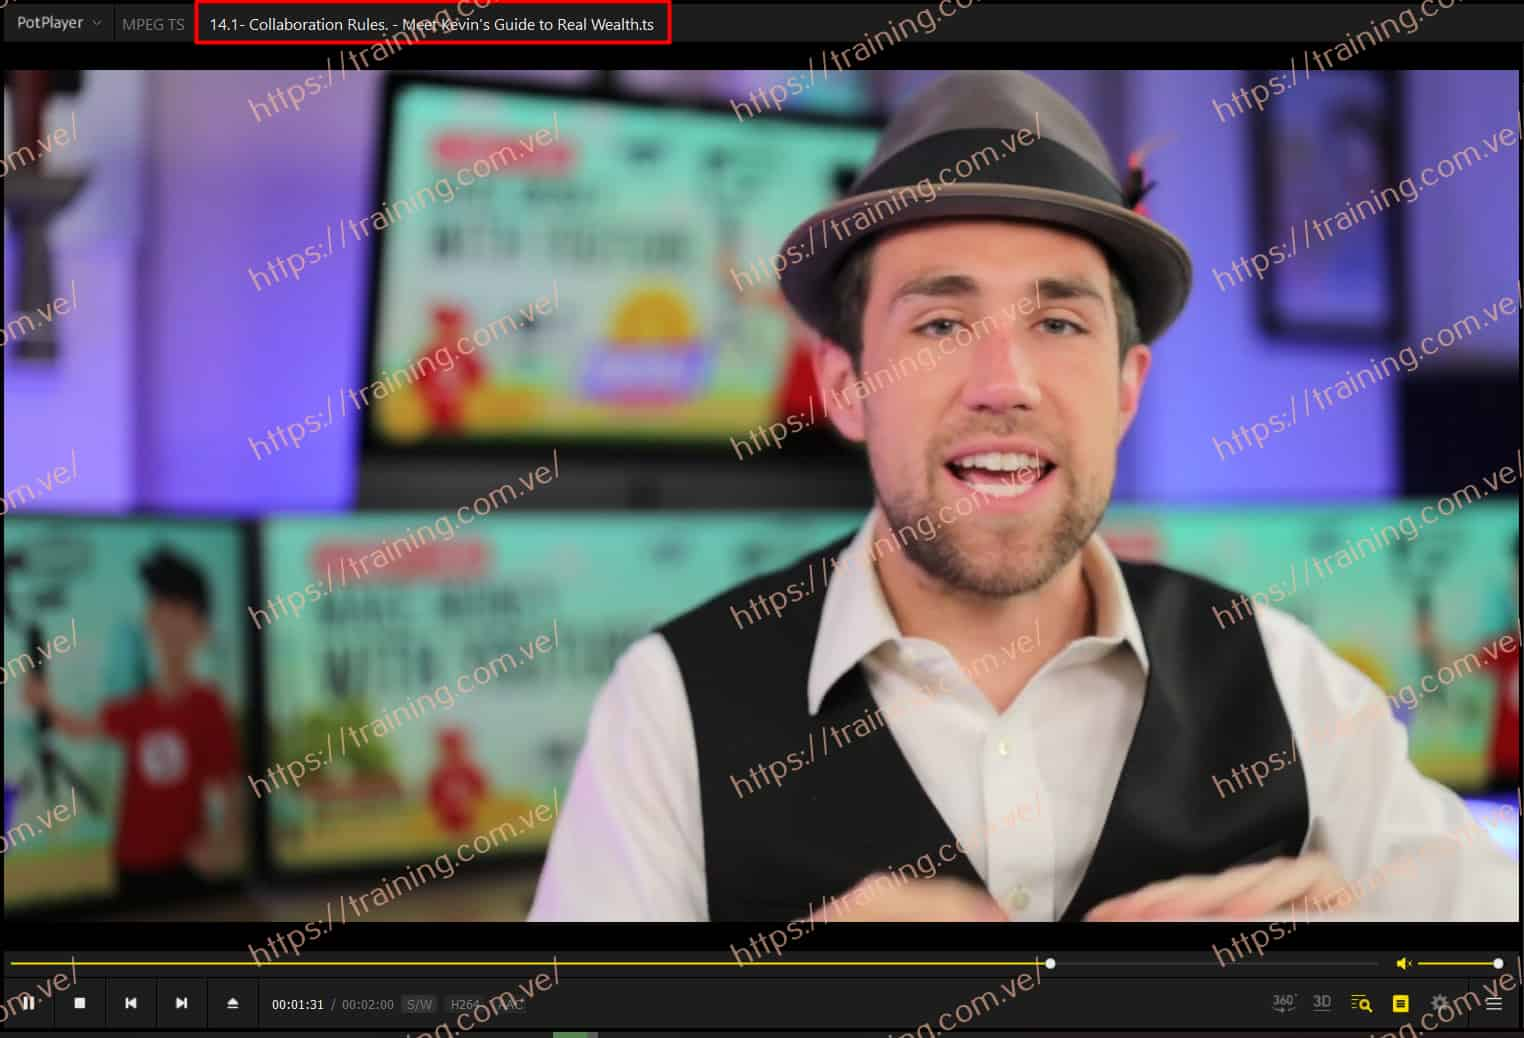 Build Wealth Making Youtube Videos by Kevin Offer